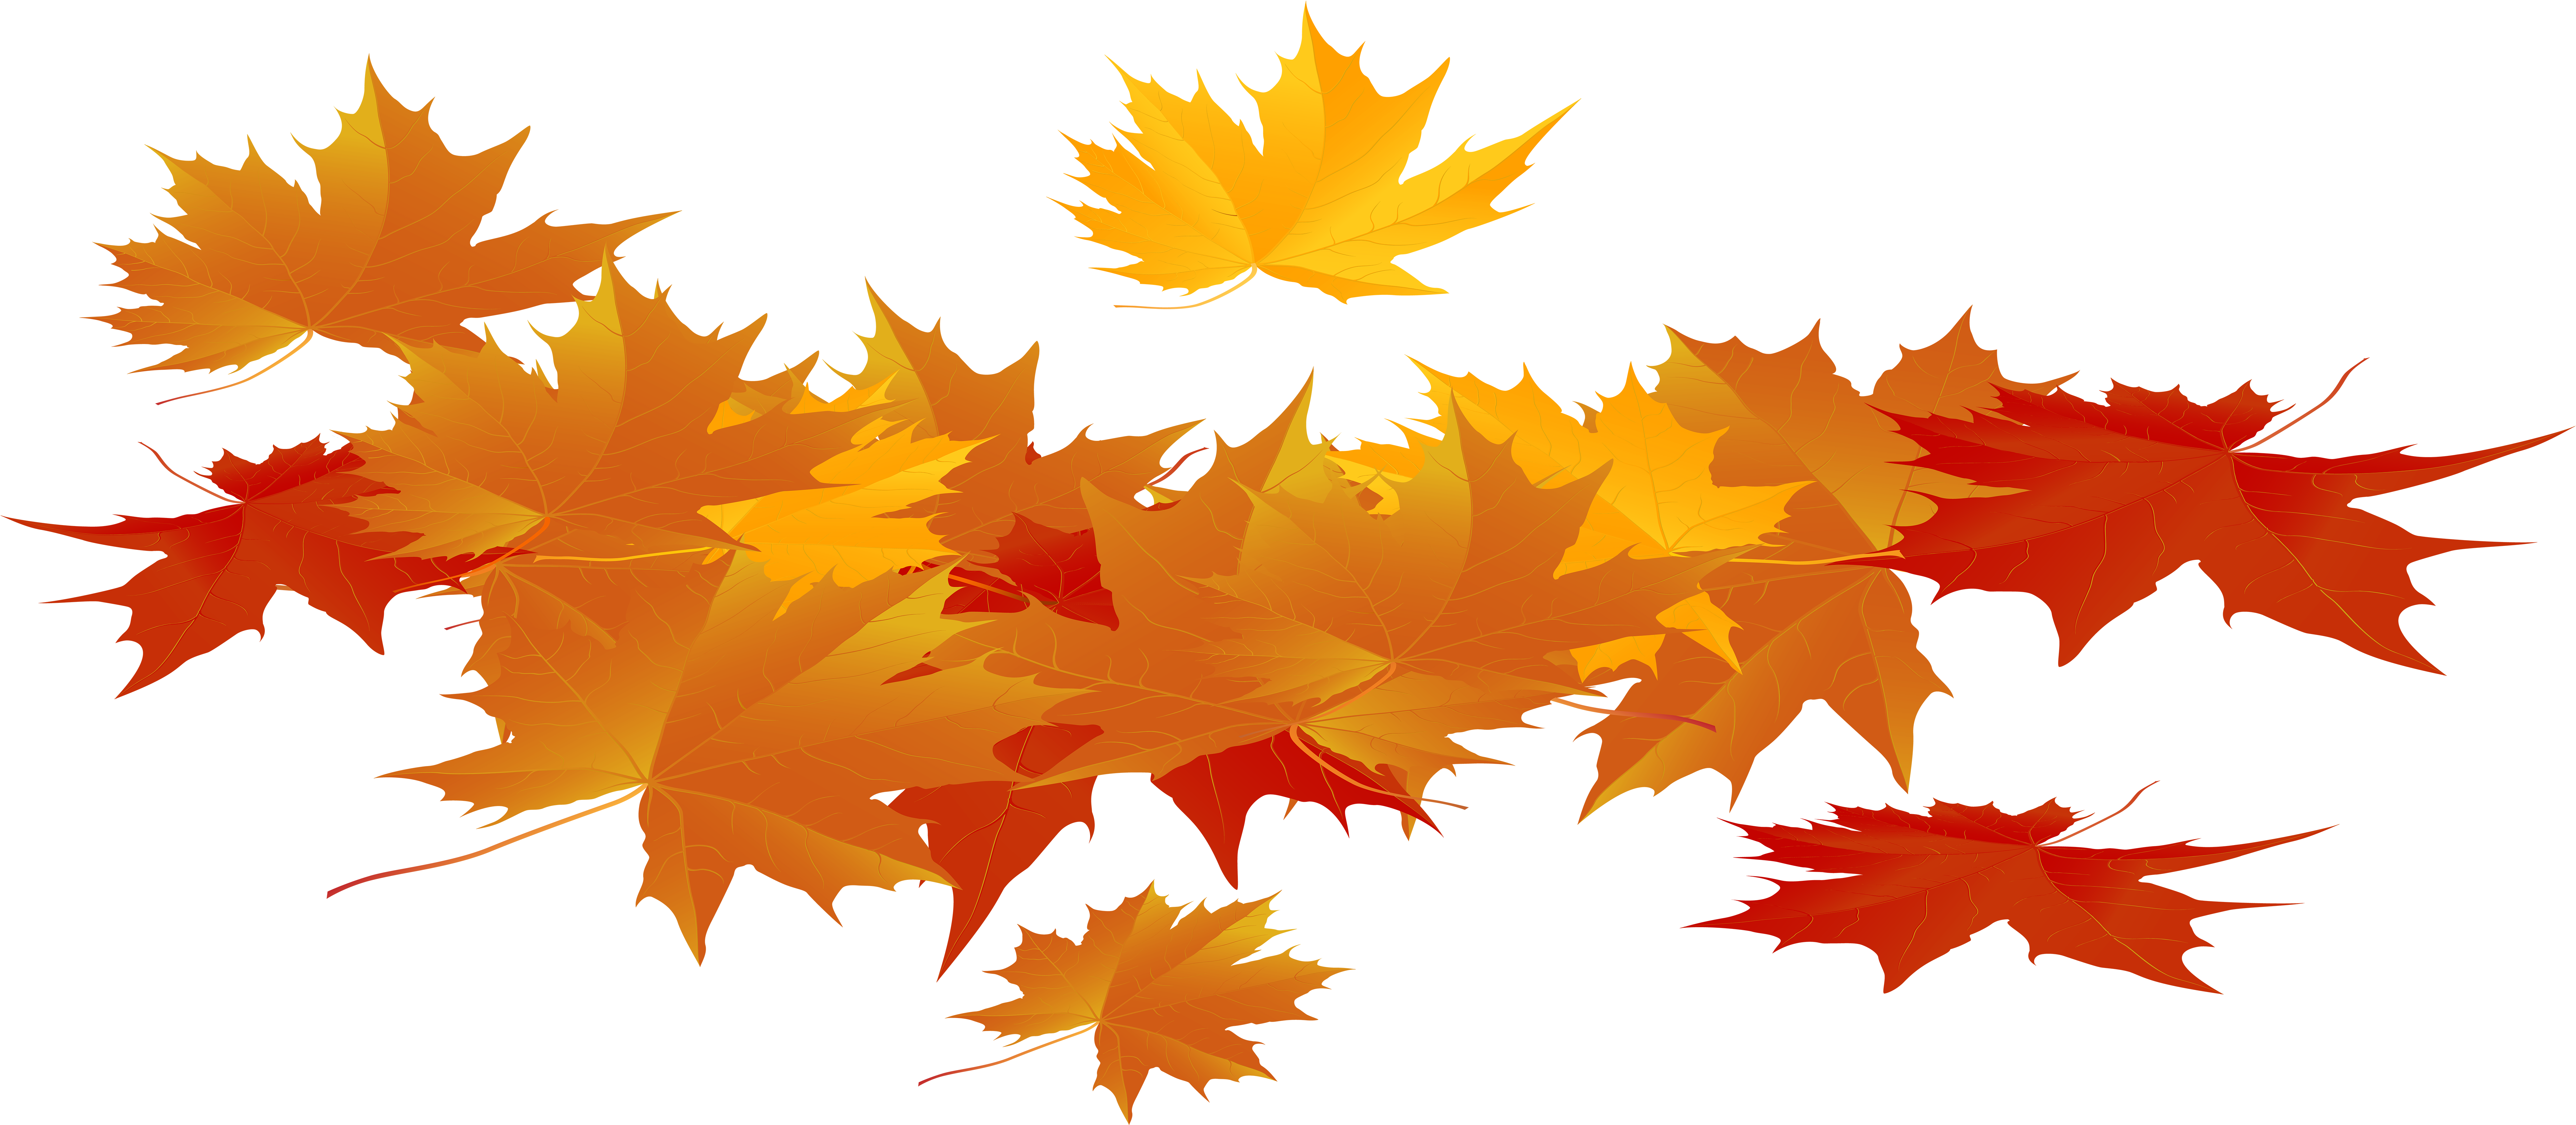 HD Thanksgiving Leaves Png.